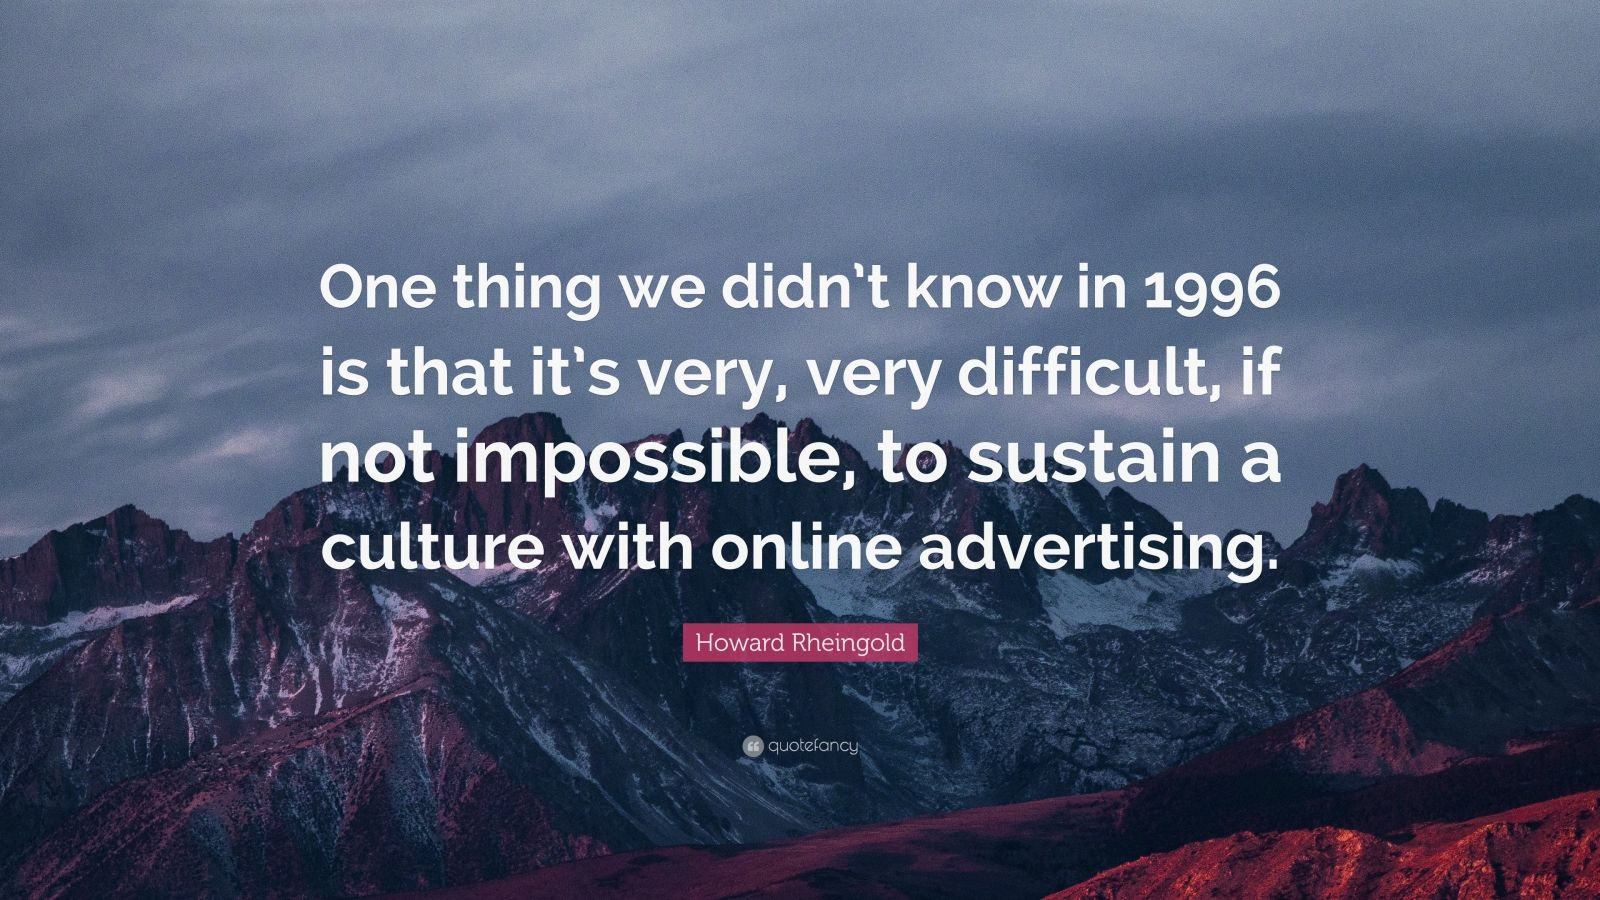 """Howard Rheingold Quote: """"One thing we didn't know in 1996 is that it's very, very difficult, if not impossible, to sustain a culture with online advertising."""""""